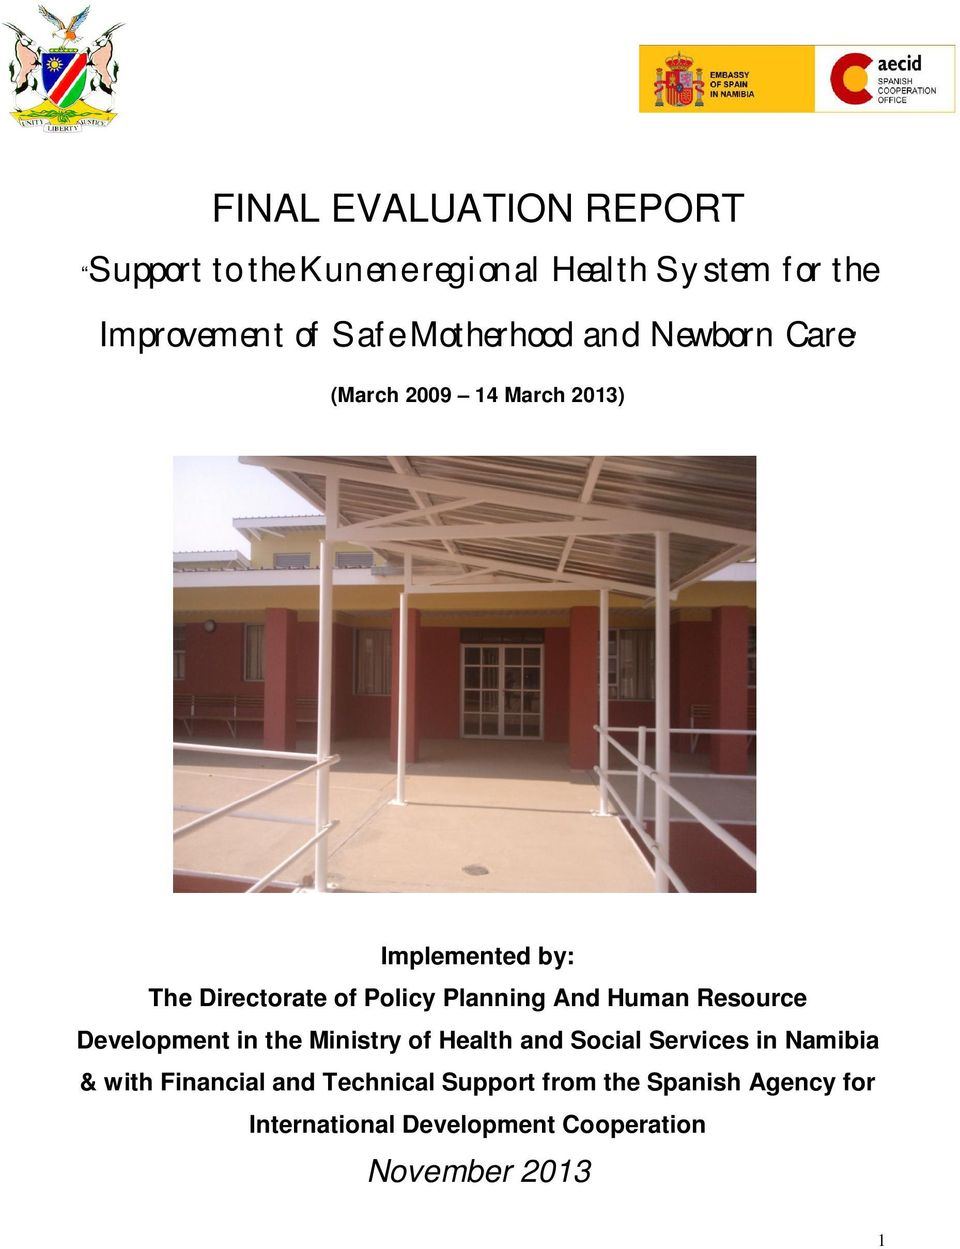 Planning And Human Resource Development in the Ministry of Health and Social Services in Namibia &